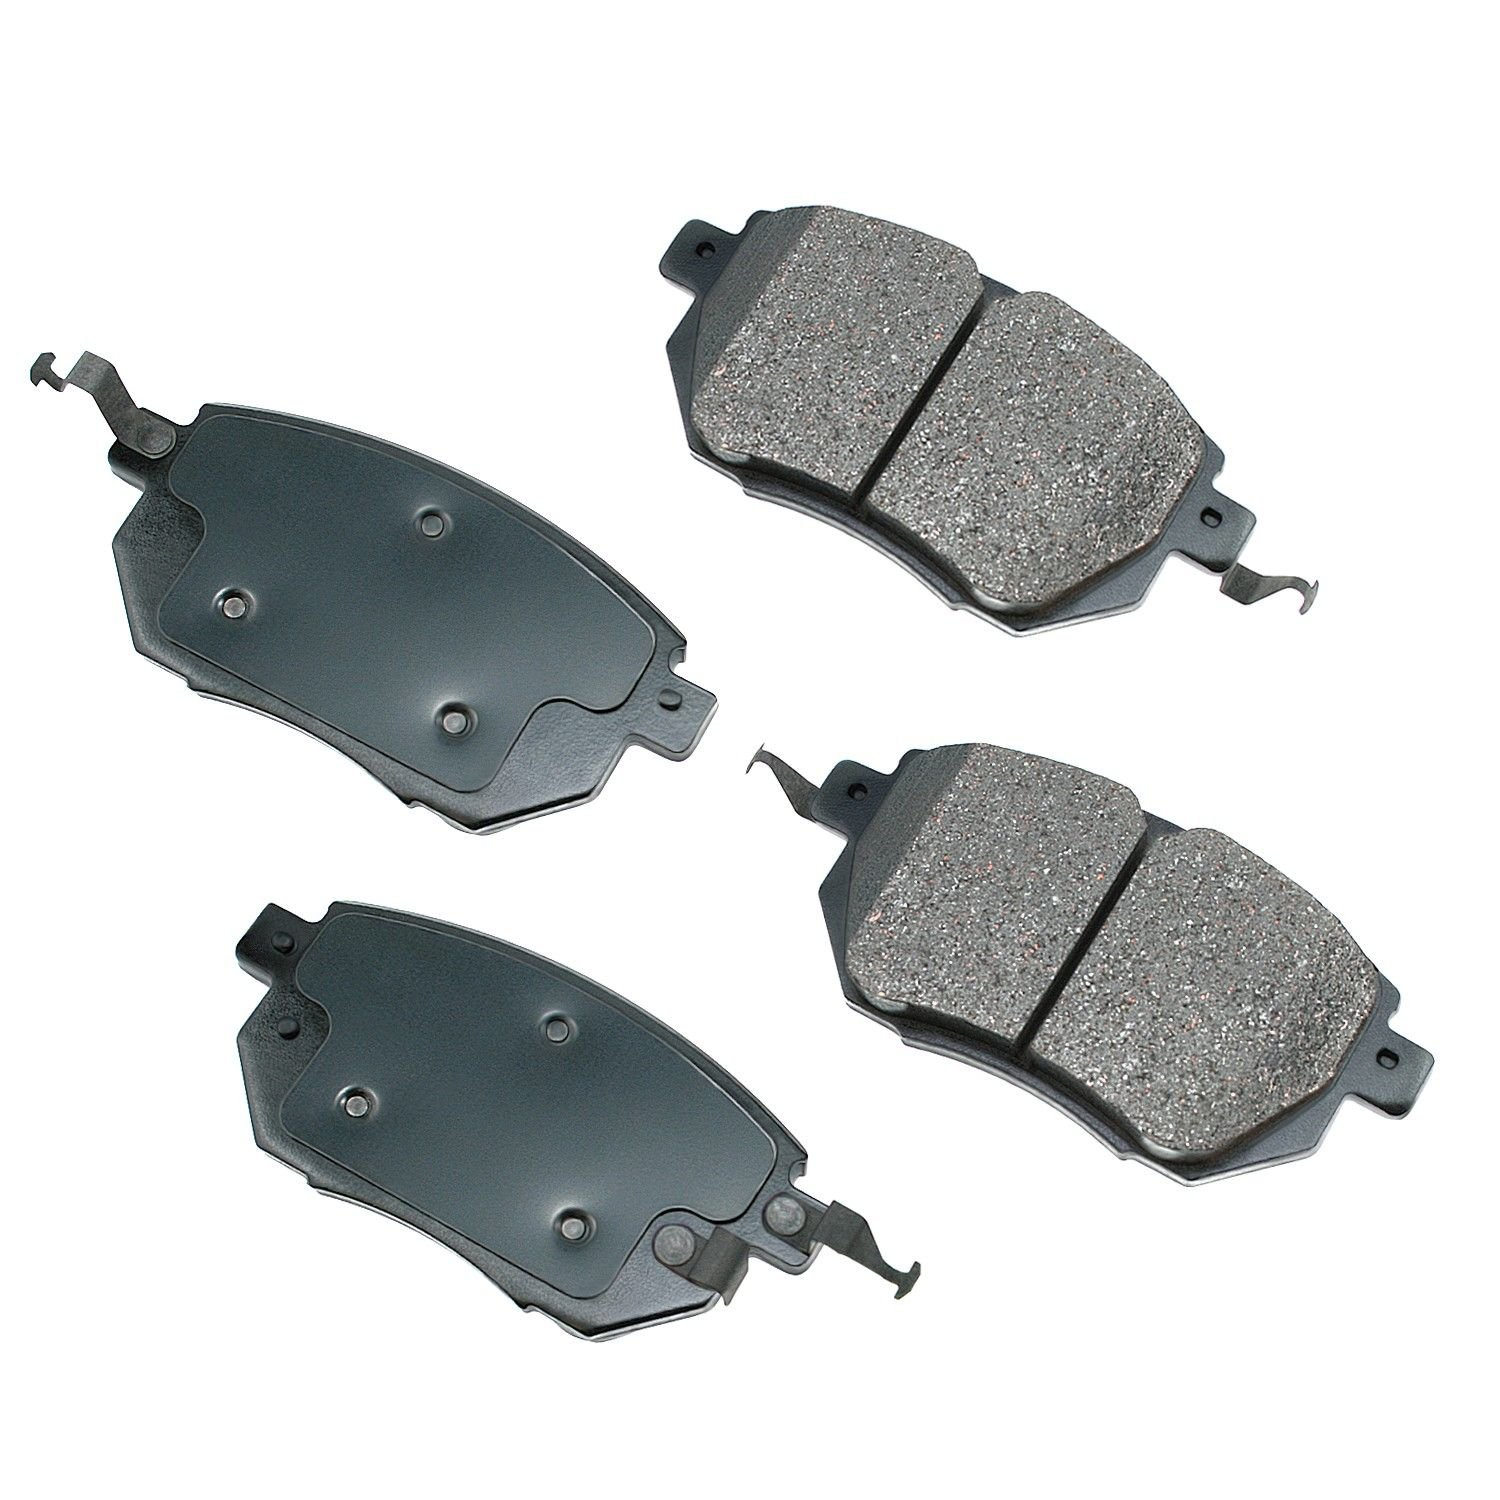 2005 Nissan Altima Disc Brake Pad   Front (Akebono ACT969) OE Pad Material  Is Ceramic .